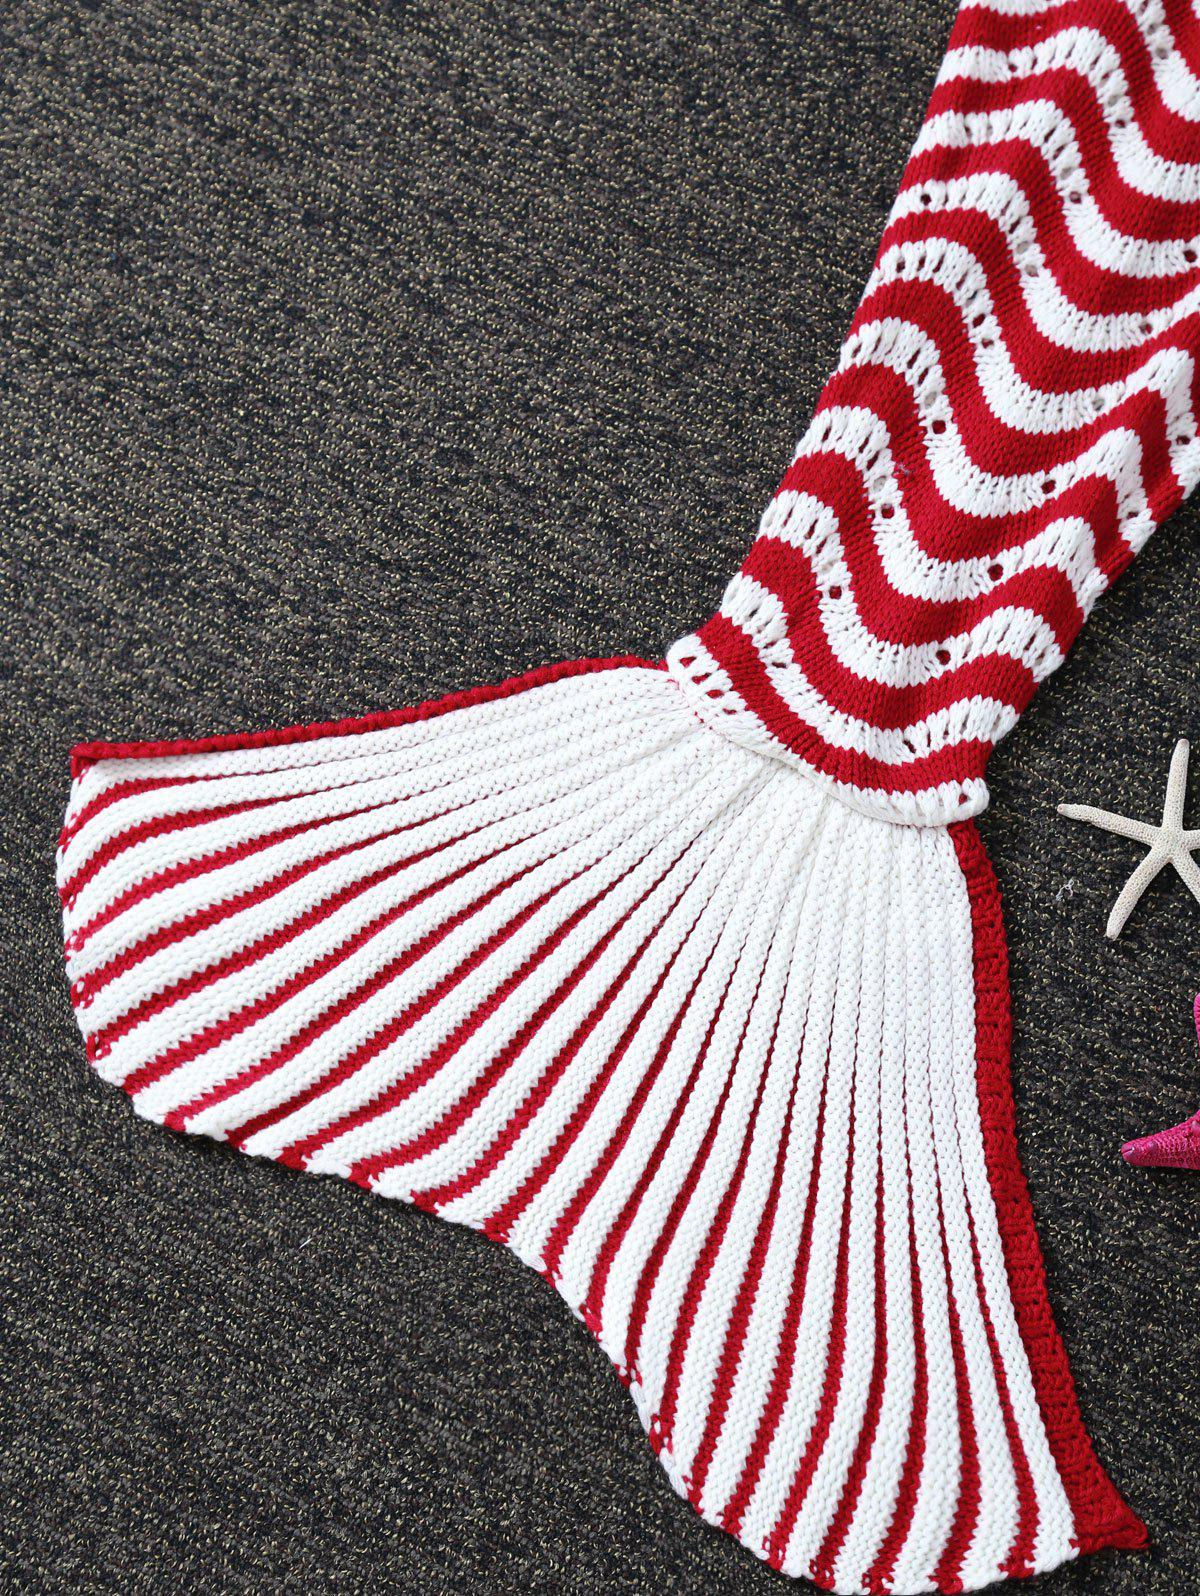 Knitted Color Splicing Striped Mermaid Tail Blanket For Kids - RED/WHITE